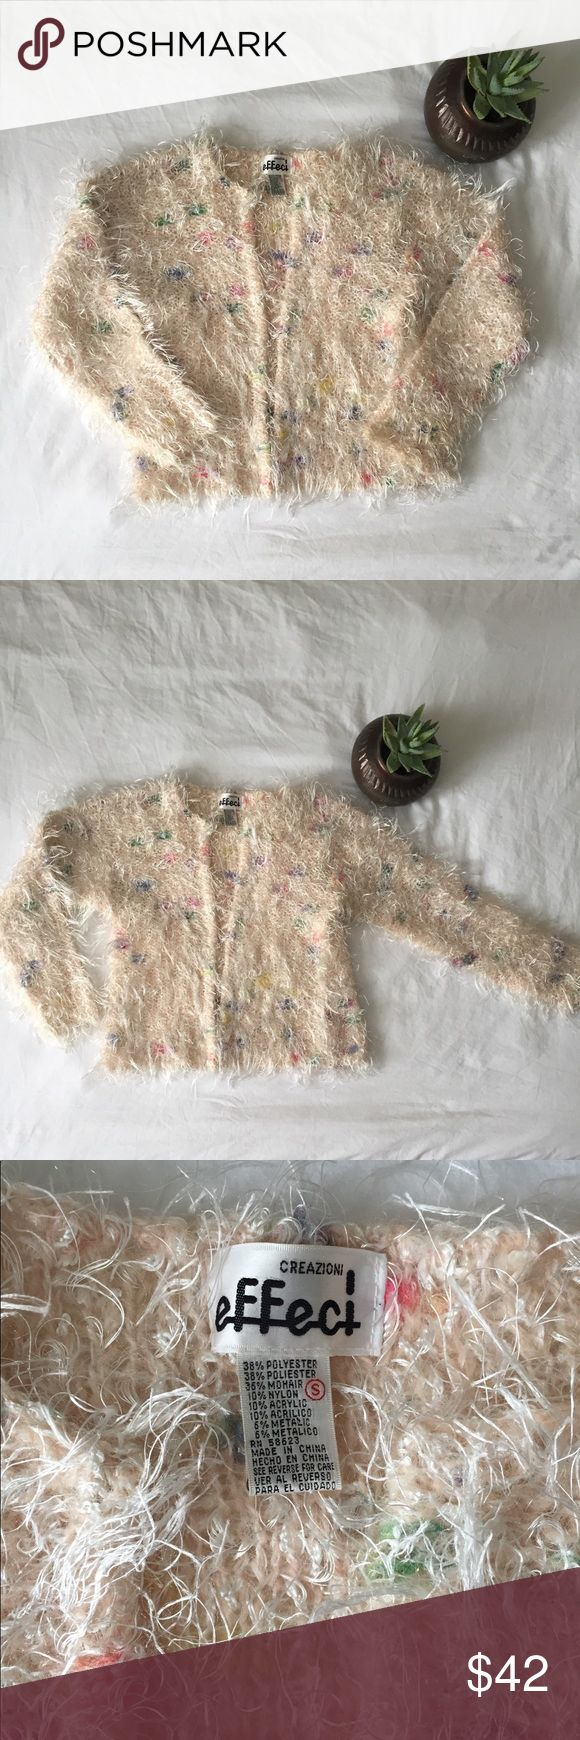 """Amazing Vintage Cardigan Sweater, Size Small Amazing Vintage Cardigan Sweater, Size Small, There is so much awesomeness going on with this sweater! It's like wearing confetti cake! Extremely Soft, Light Pink With white fringe, pops of pastel spots. Open Front Cardigan without Buttons, Brand: Creazioni Effect, 38% Polyester, 36% Mohair, 10% Nylon, 10% Acrylic, 6% Metalic, Hand Wash, Length 23"""" Underarm to Underarm 19"""" Sleeve 24"""" Vintage Sweaters"""